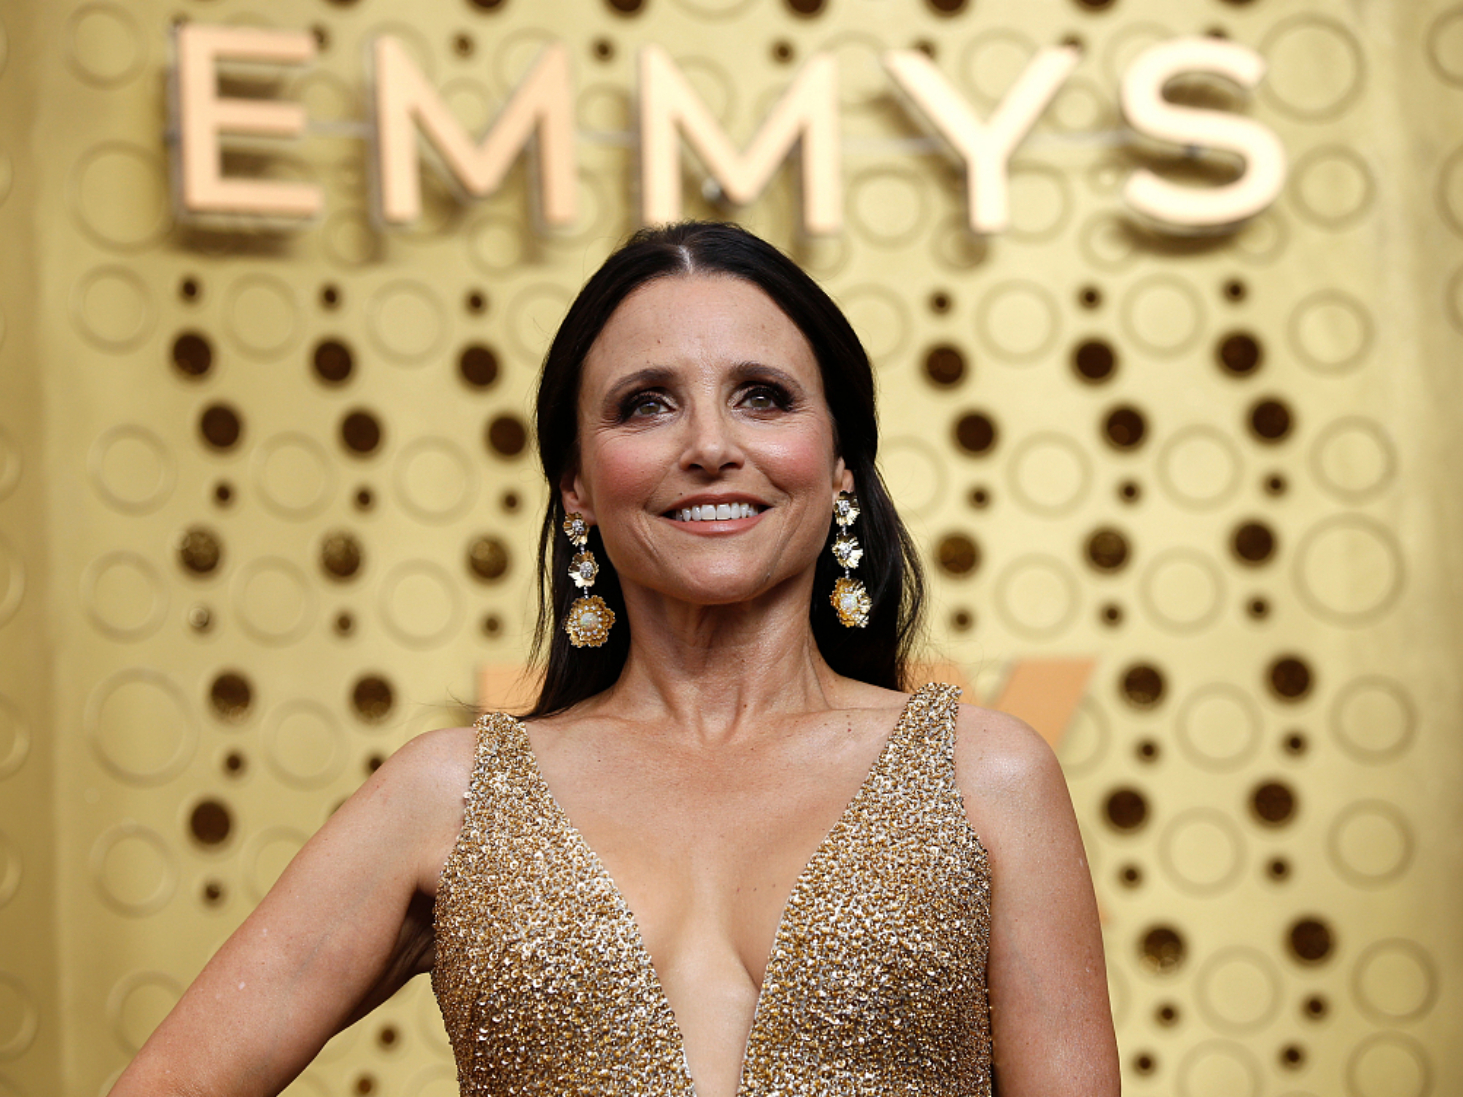 Television's best and brightest shine on Emmys red carpet